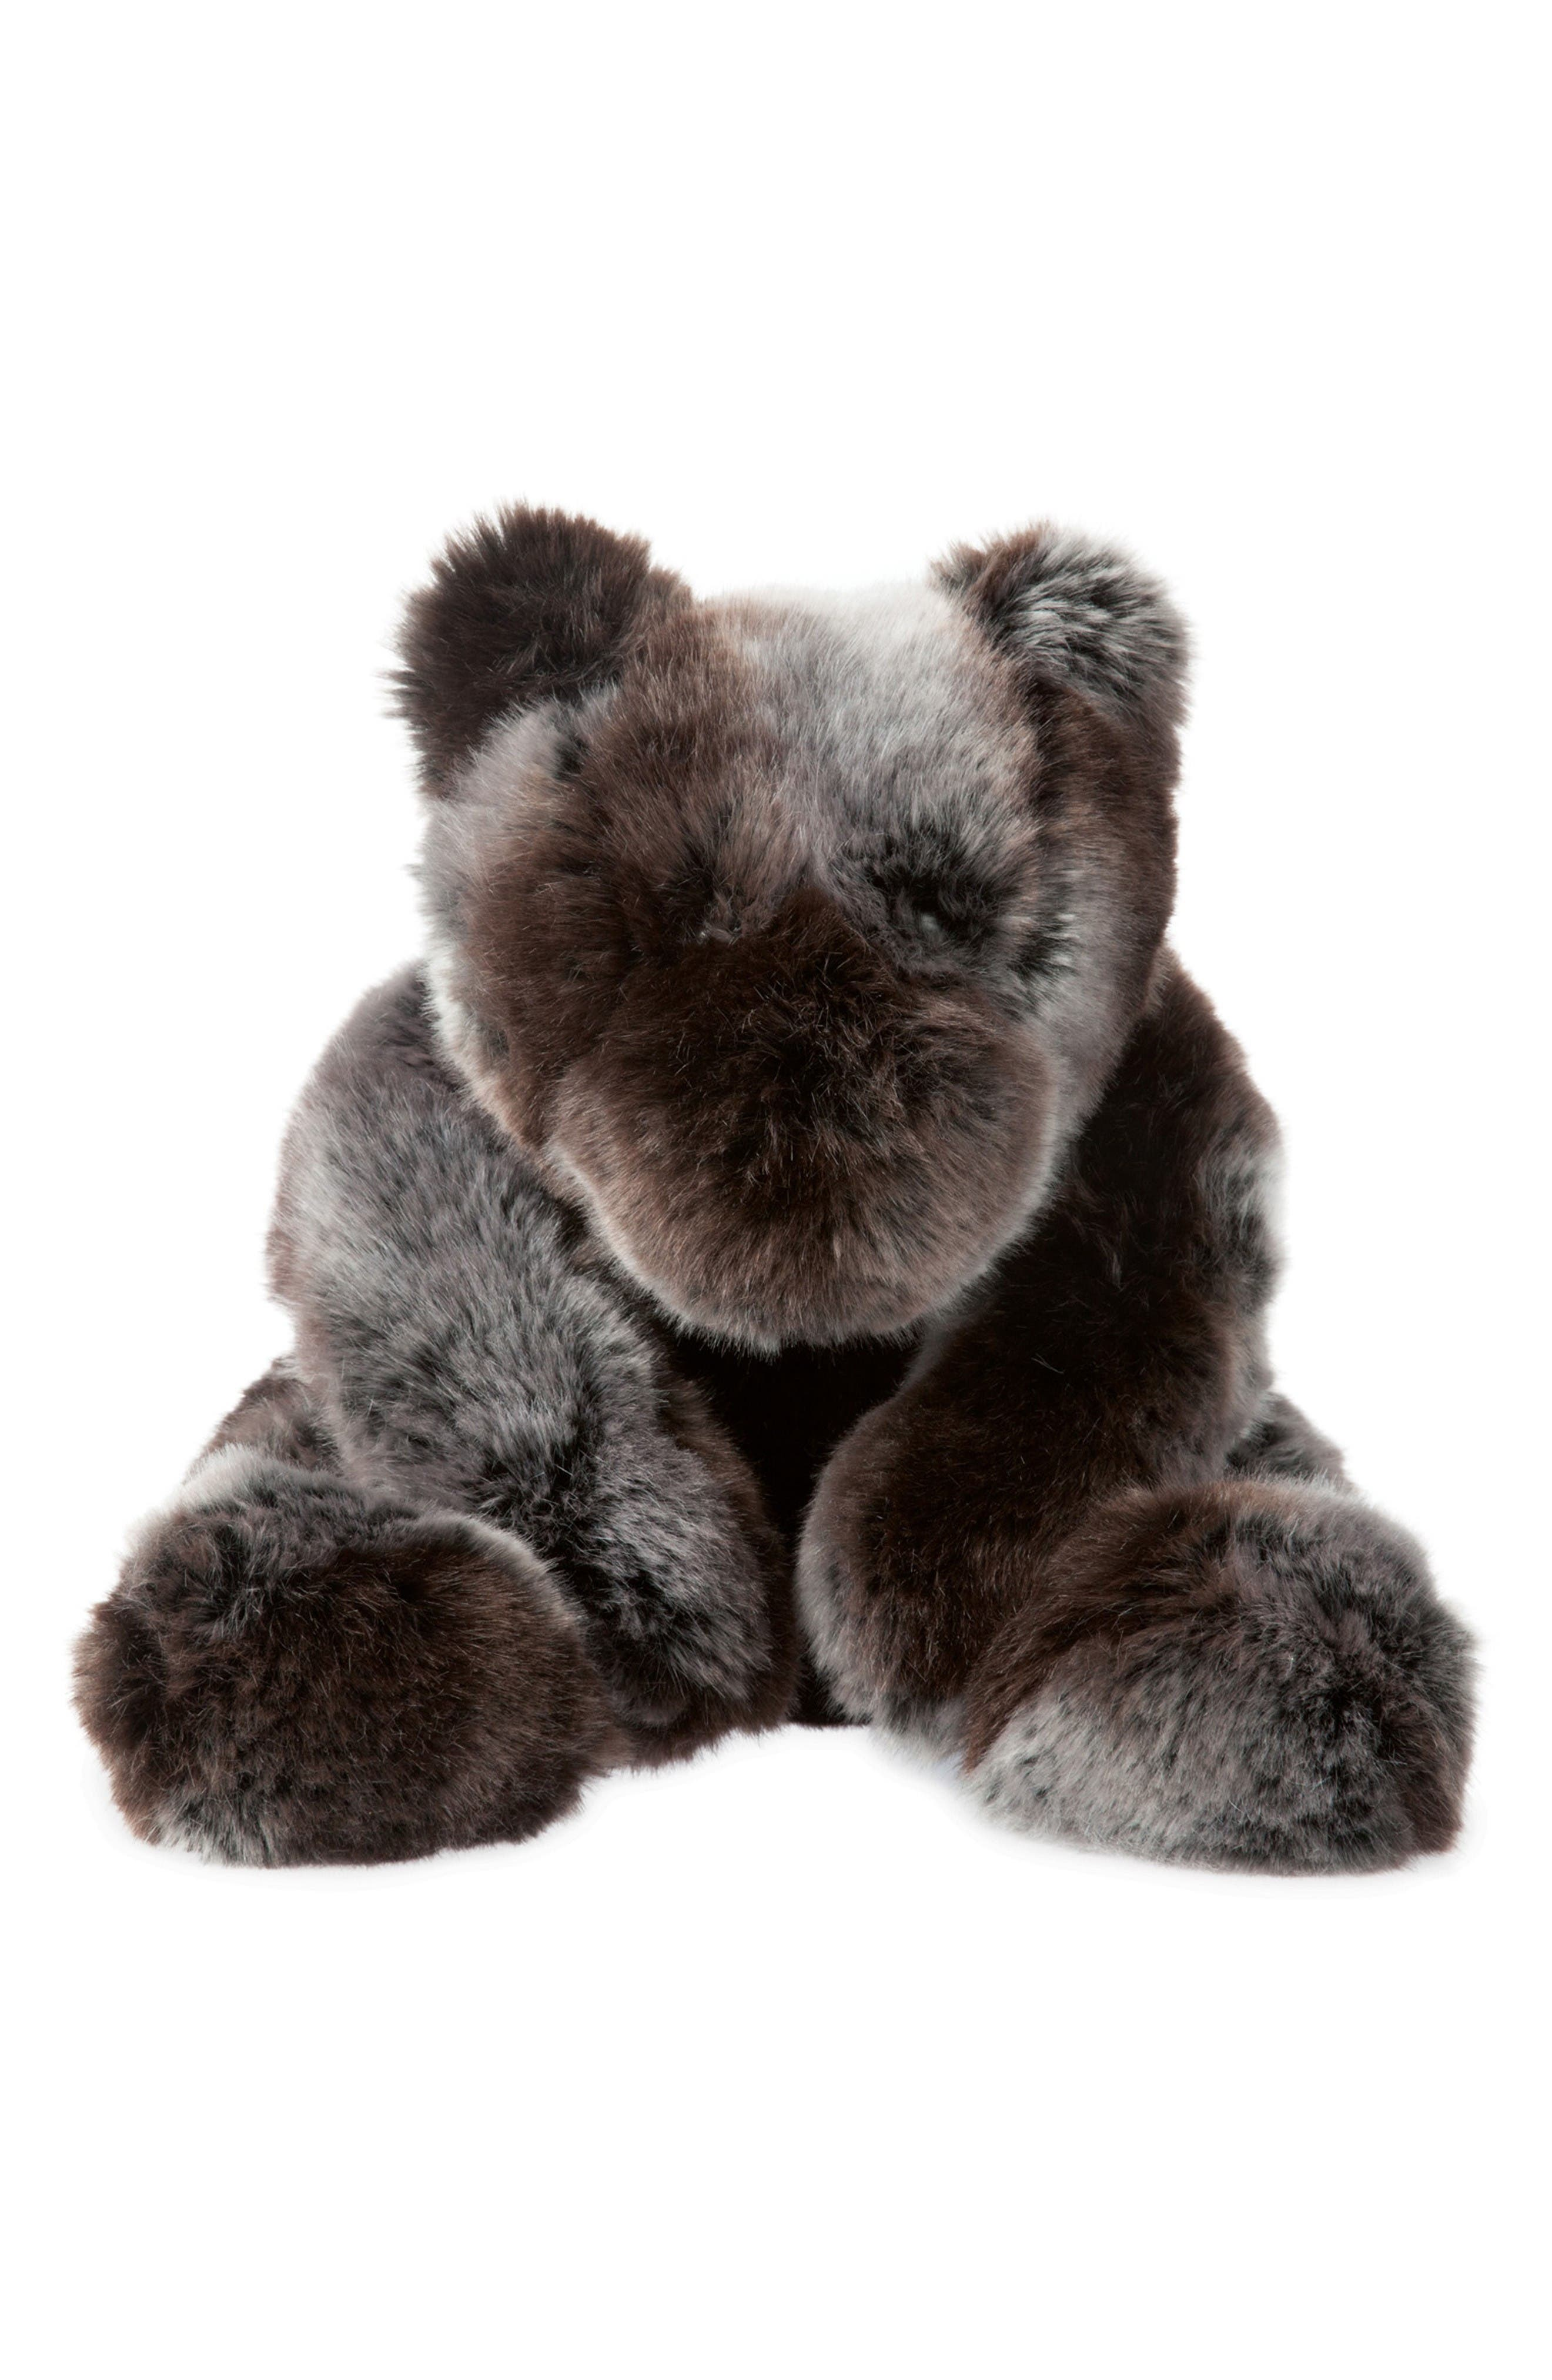 Alternate Image 1 Selected - Manhattan Toy Luxe Sable Bear Stuffed Animal